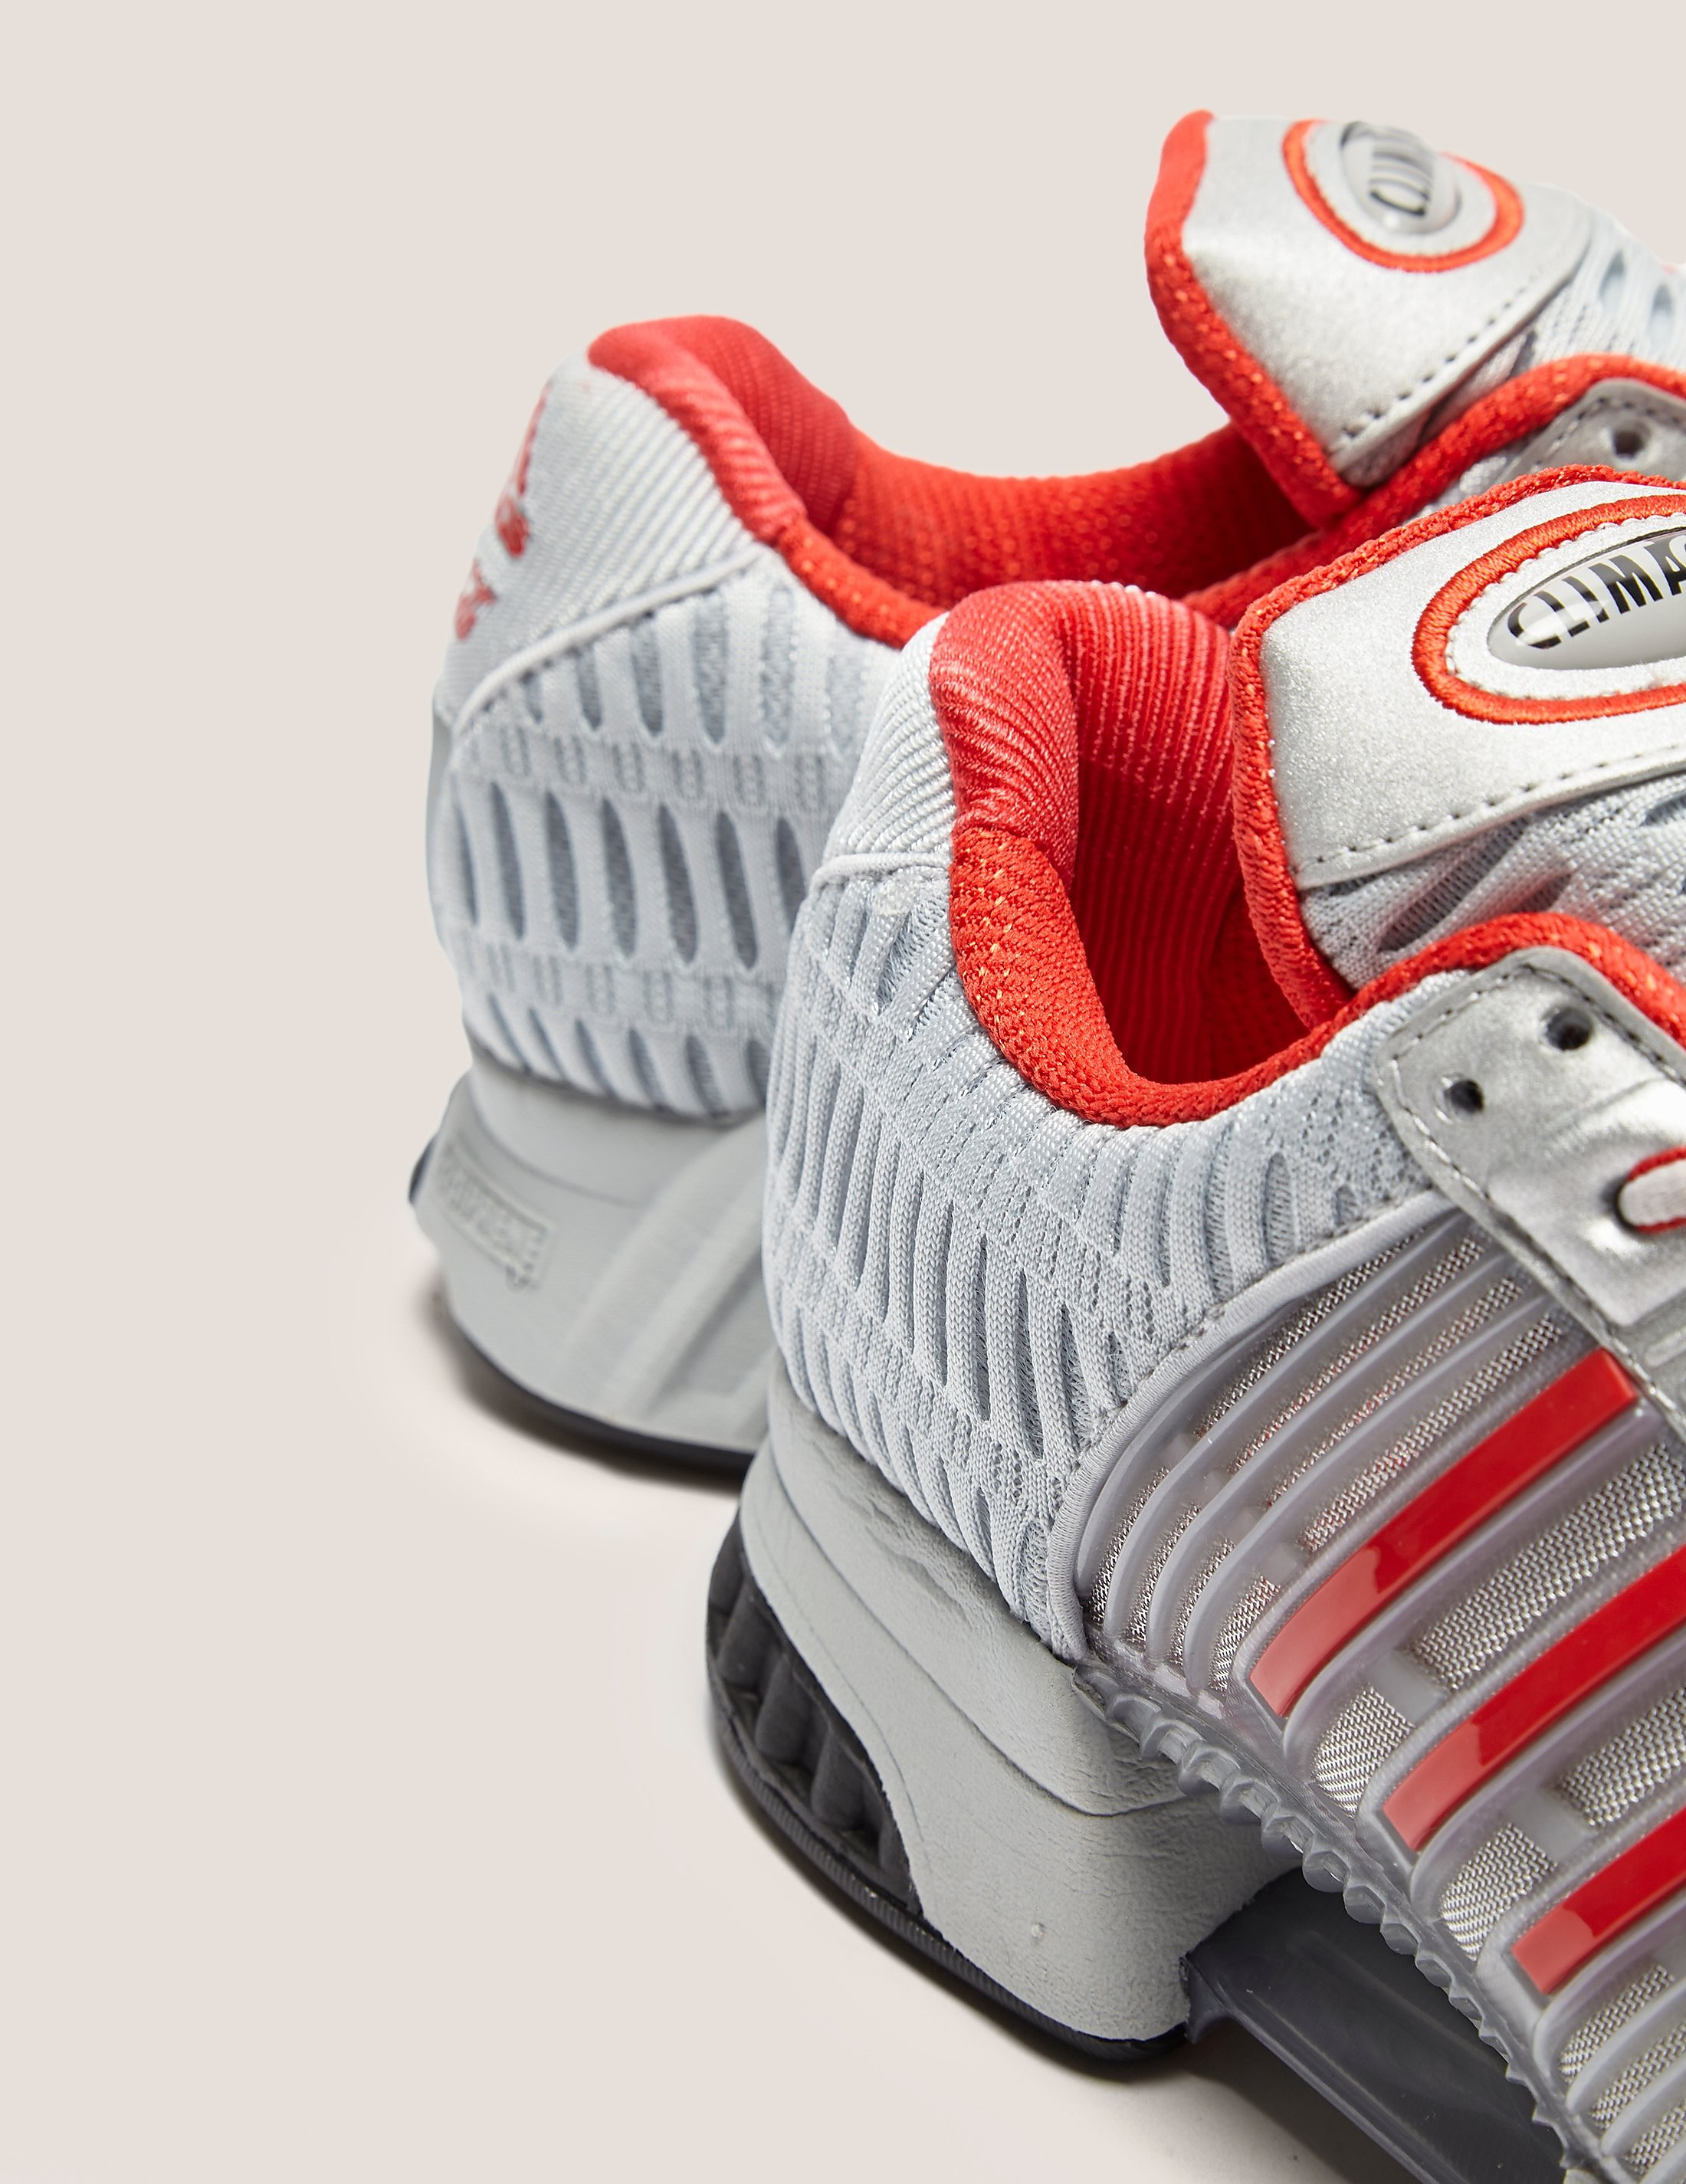 adidas Originals Climacool 1 Coca-Cola 'Diet Coke'